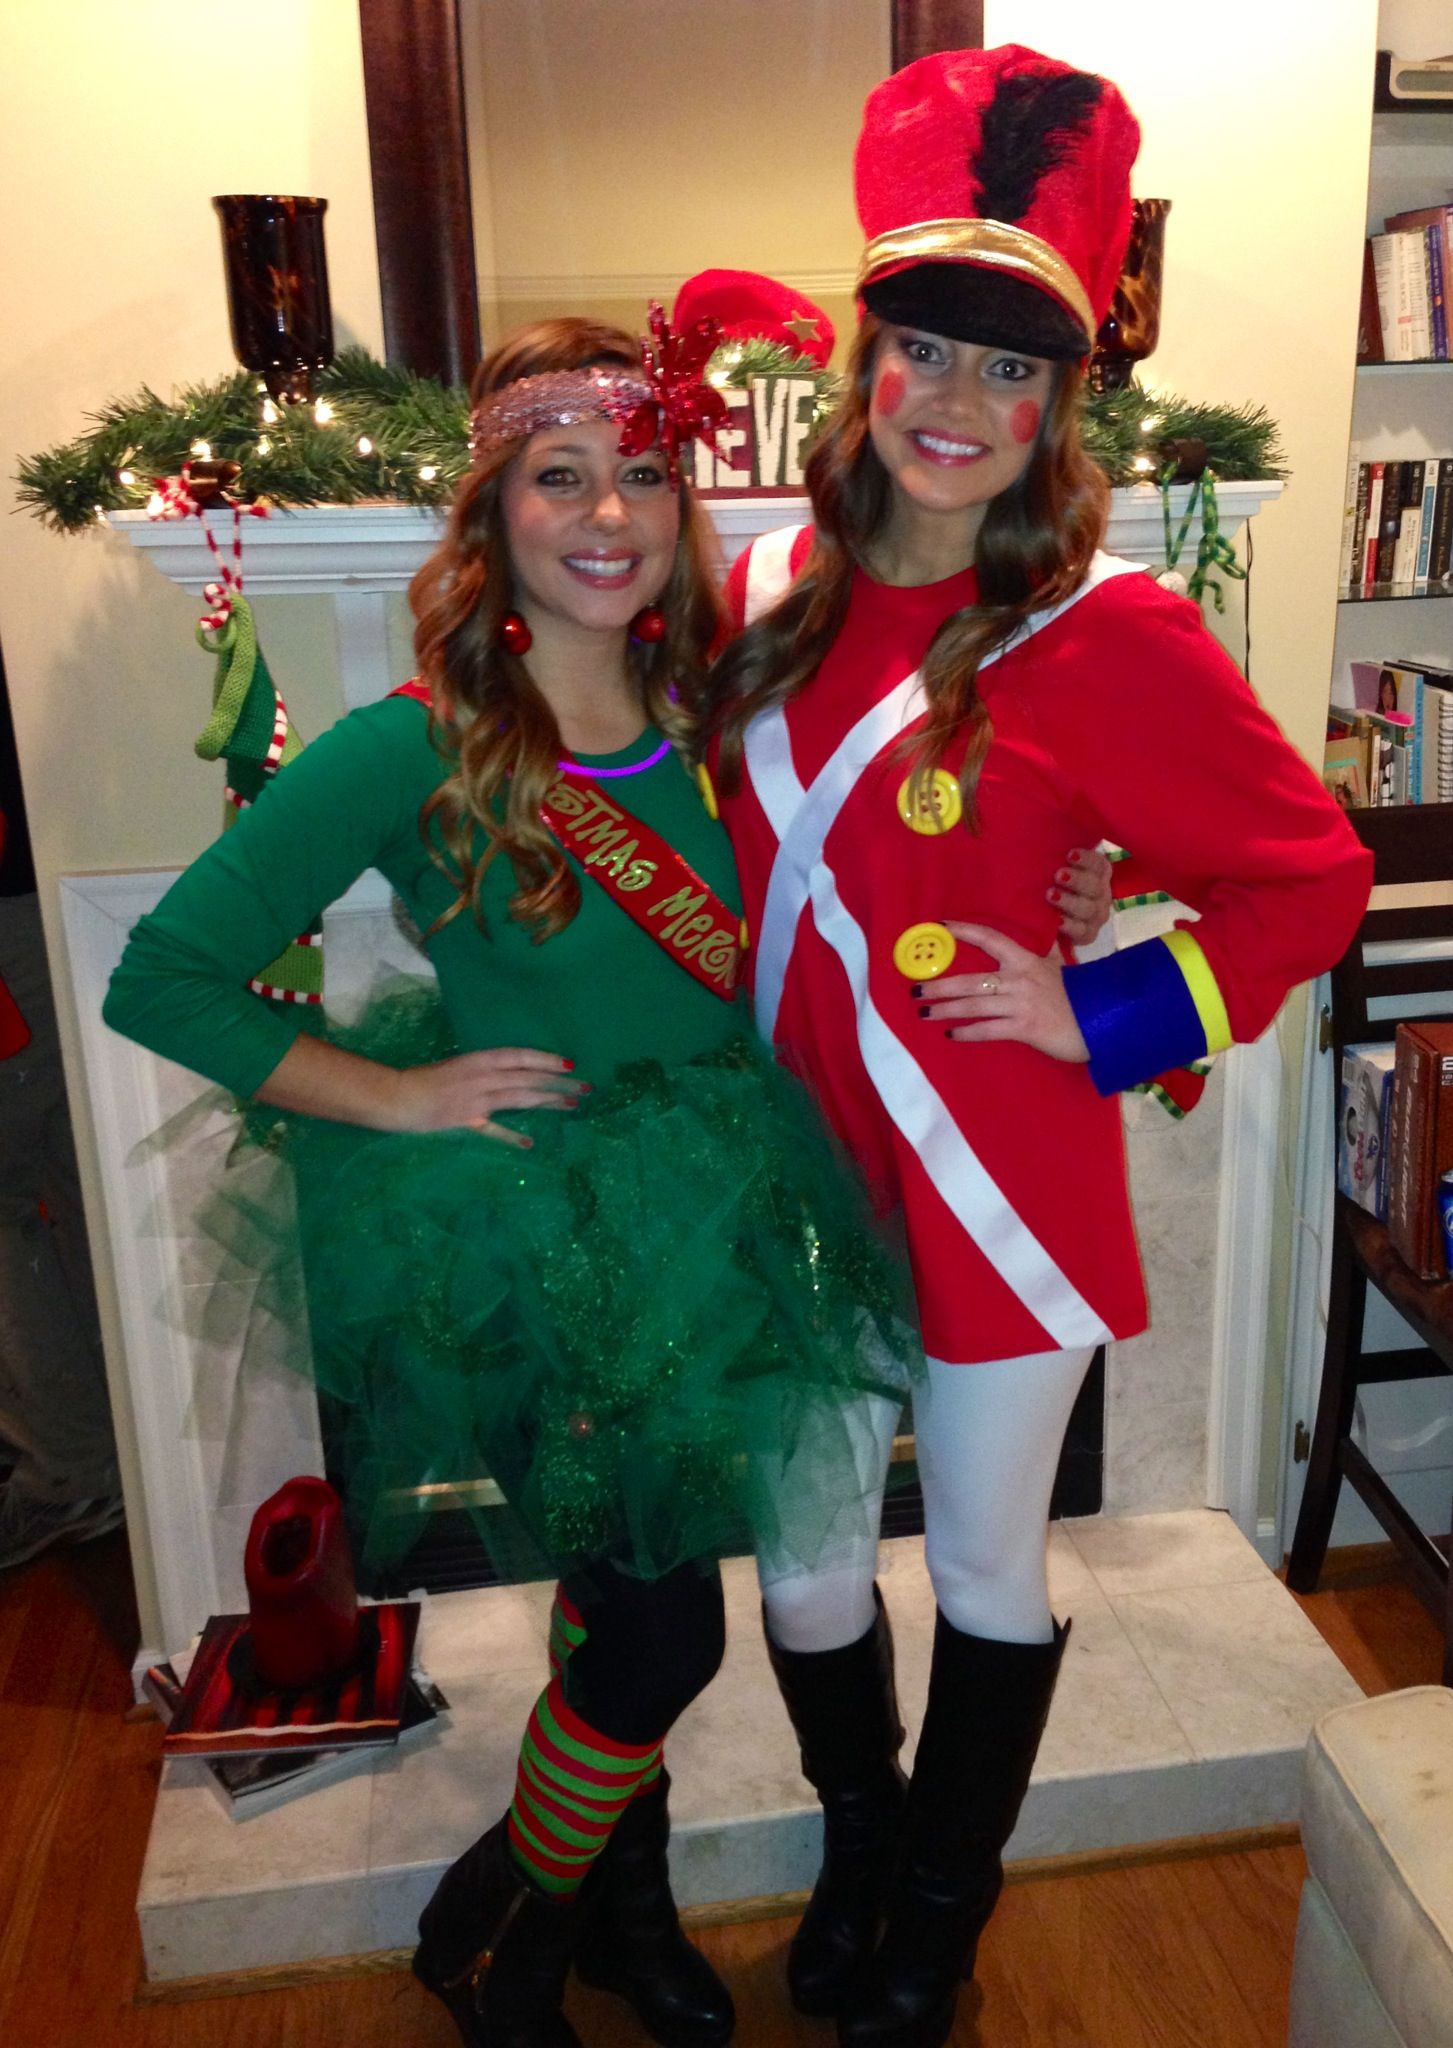 Lovely Tacky Christmas Party Outfit Ideas Part - 11: Fun Christmas Party Outfits